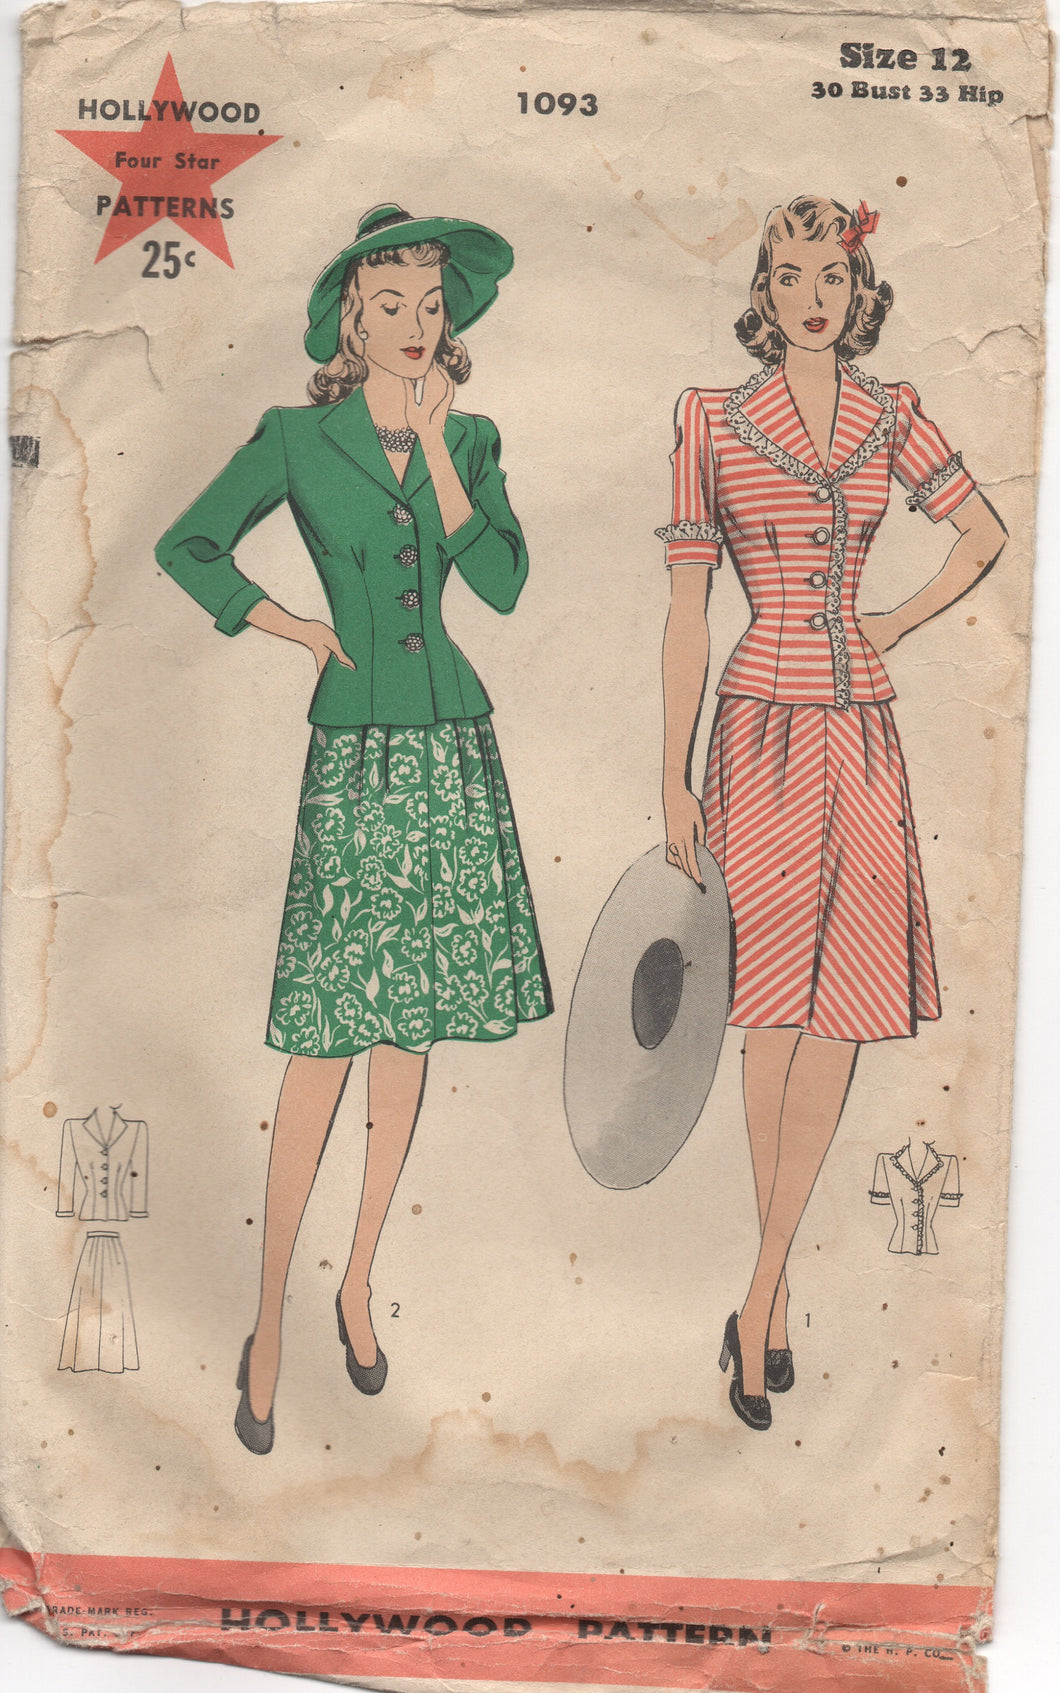 Wartime 1940's Hollywood Two Piece Dress with Short Sleeves and Flared Skirt - Bust 30